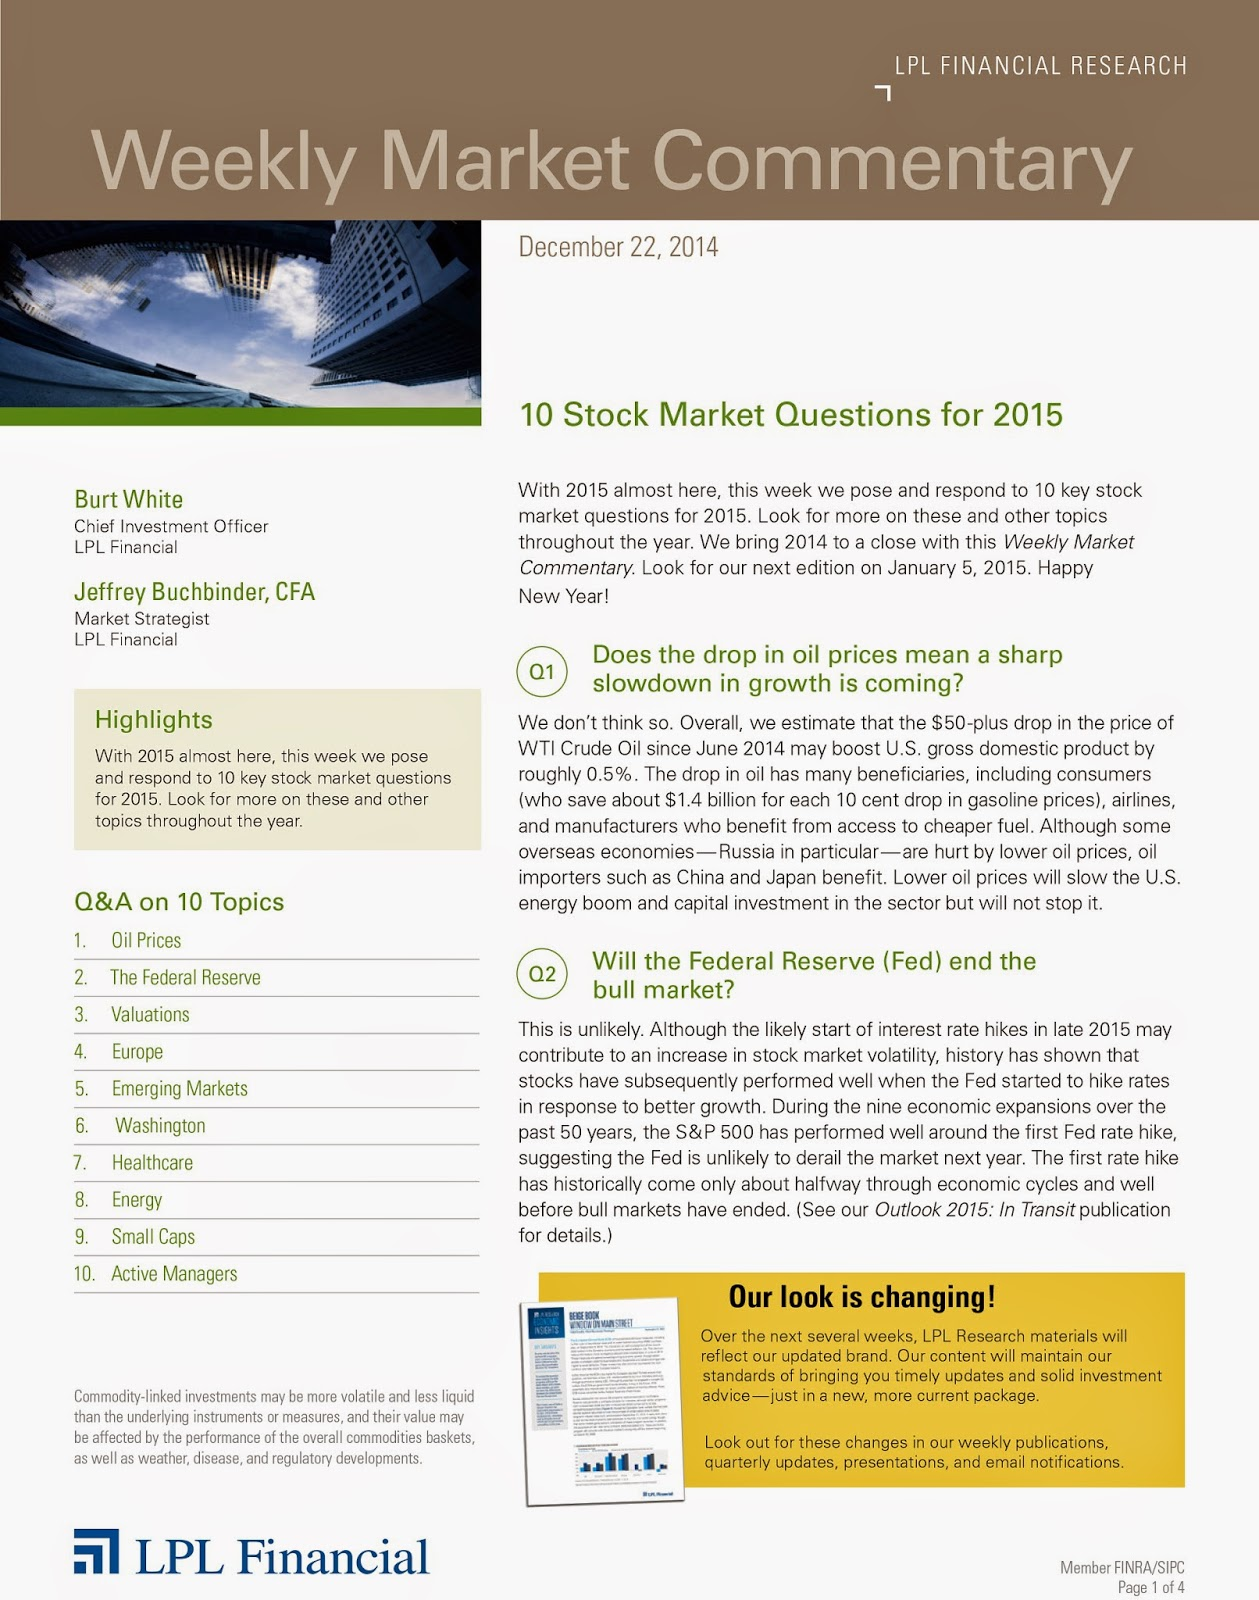 December 22, 2014 - LPL Financial Weekly Market Commentary from Legacy Wealth Planning